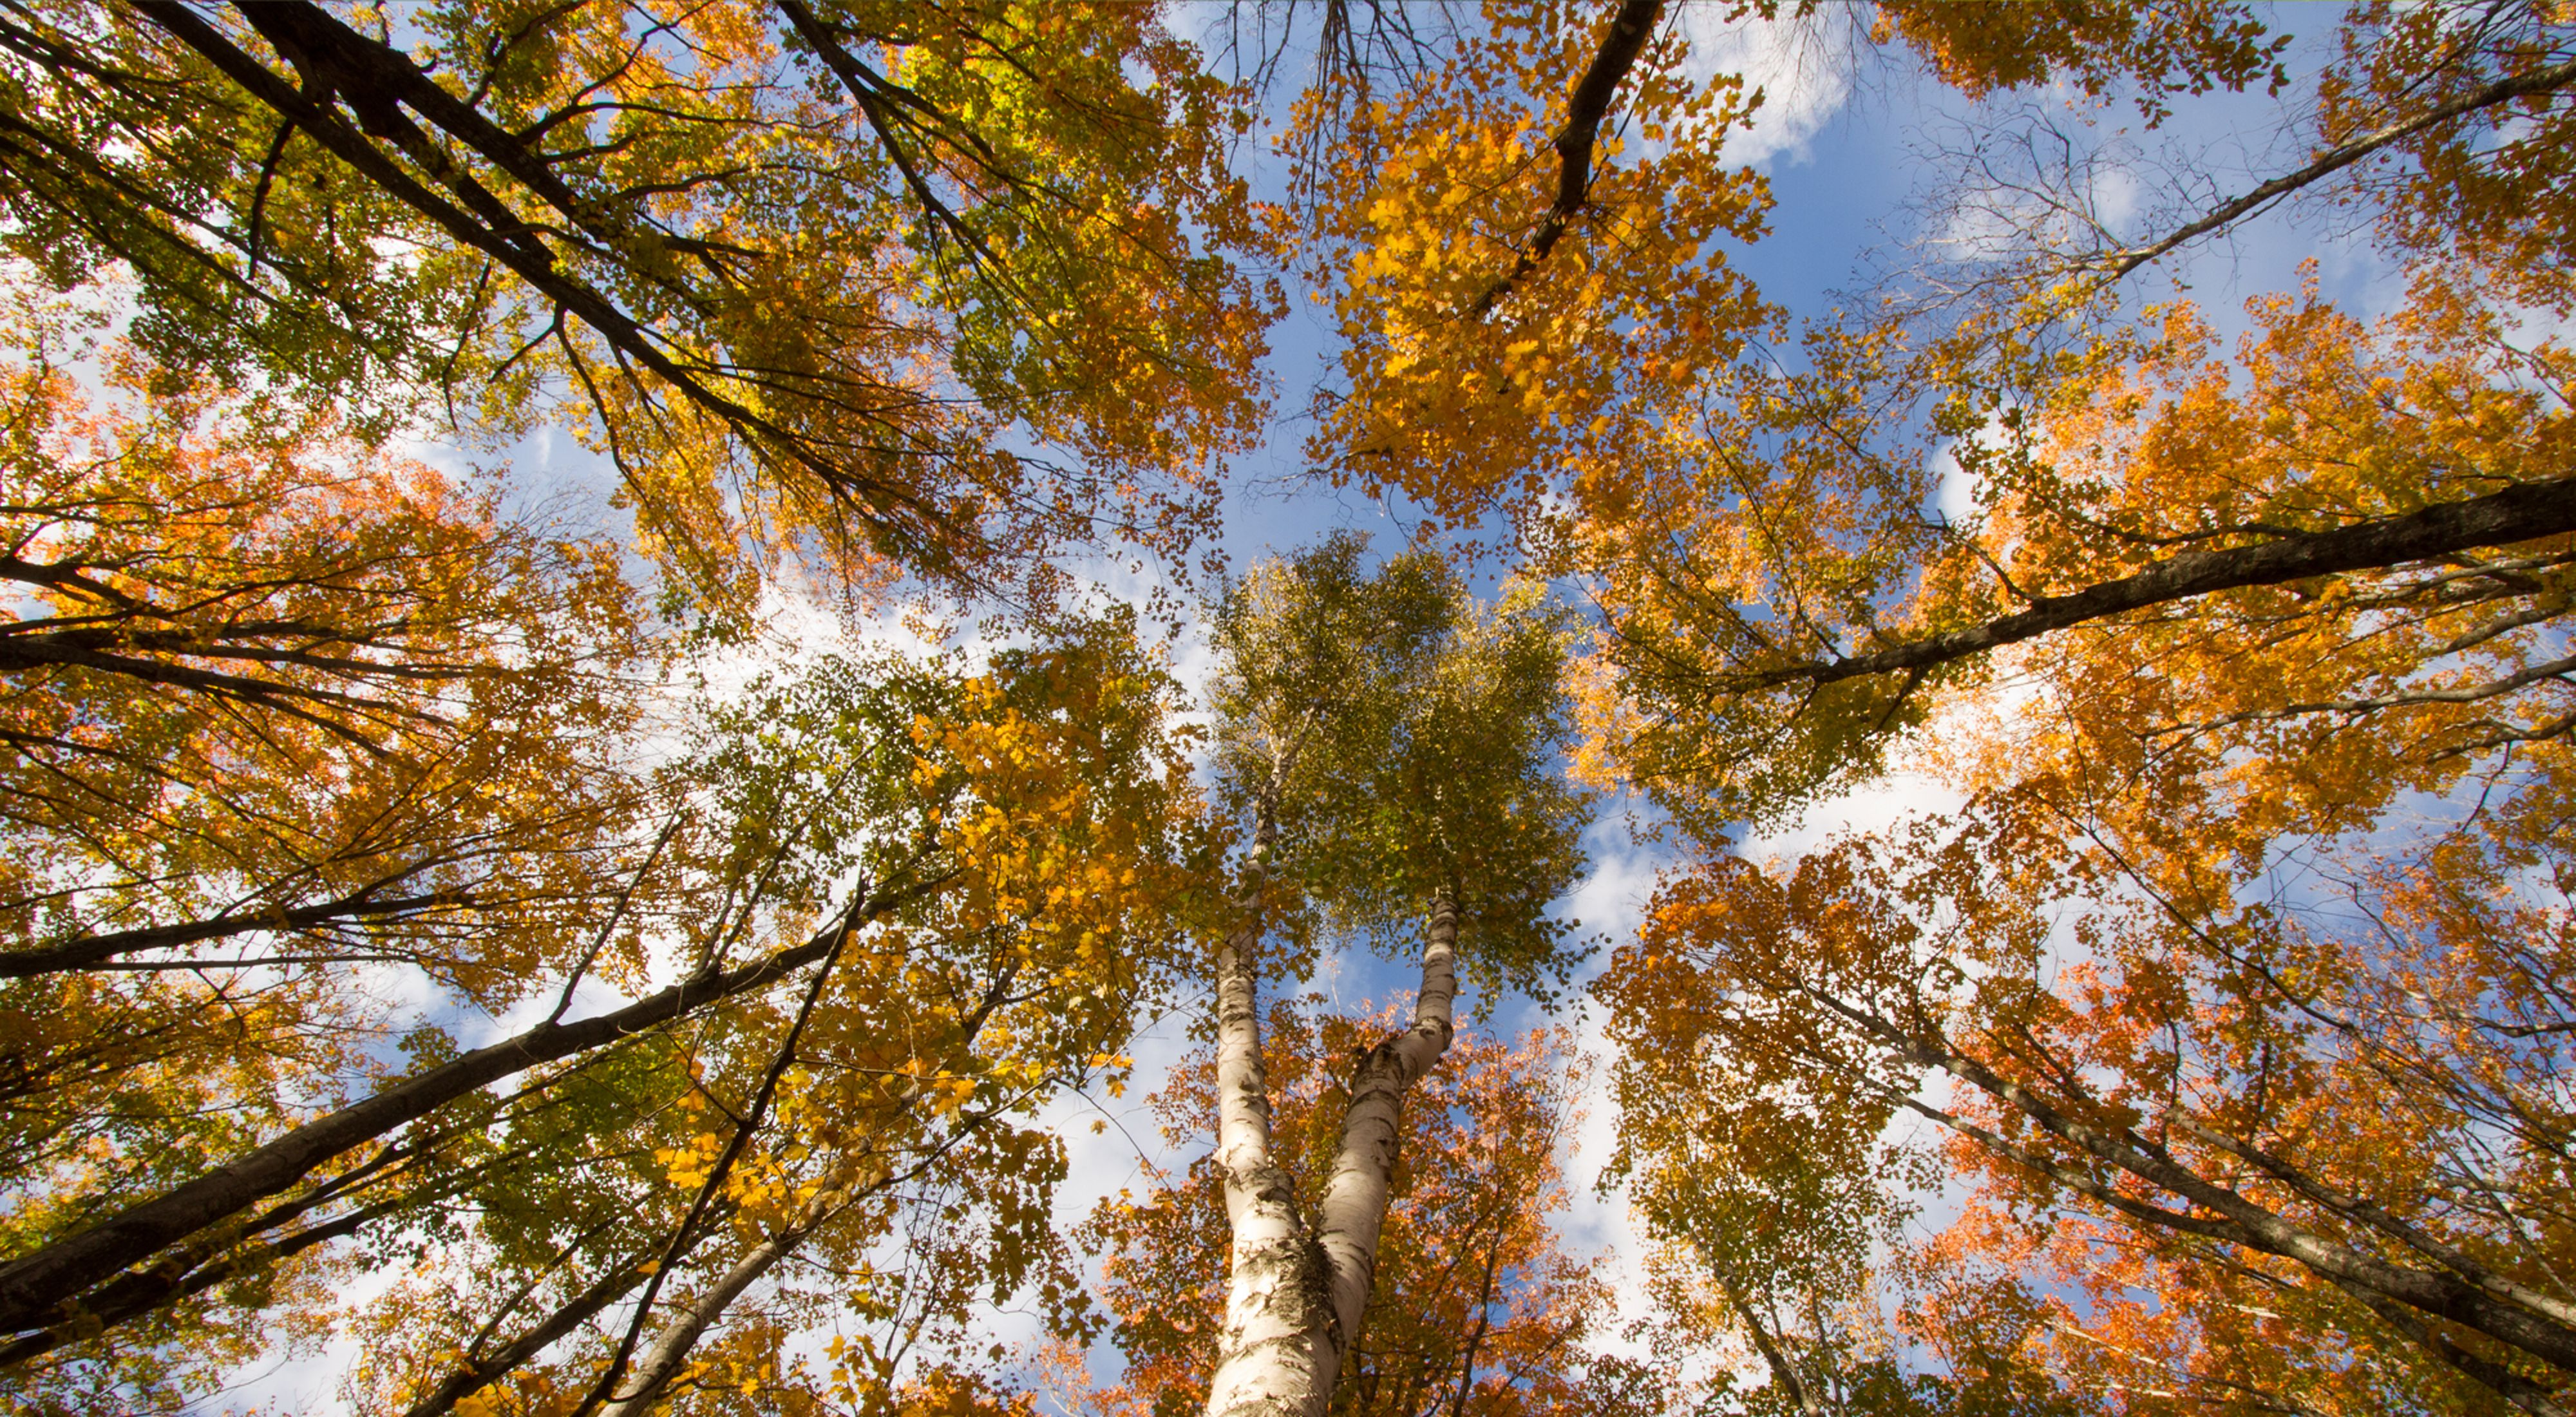 Looking up at trees with autumn colors.